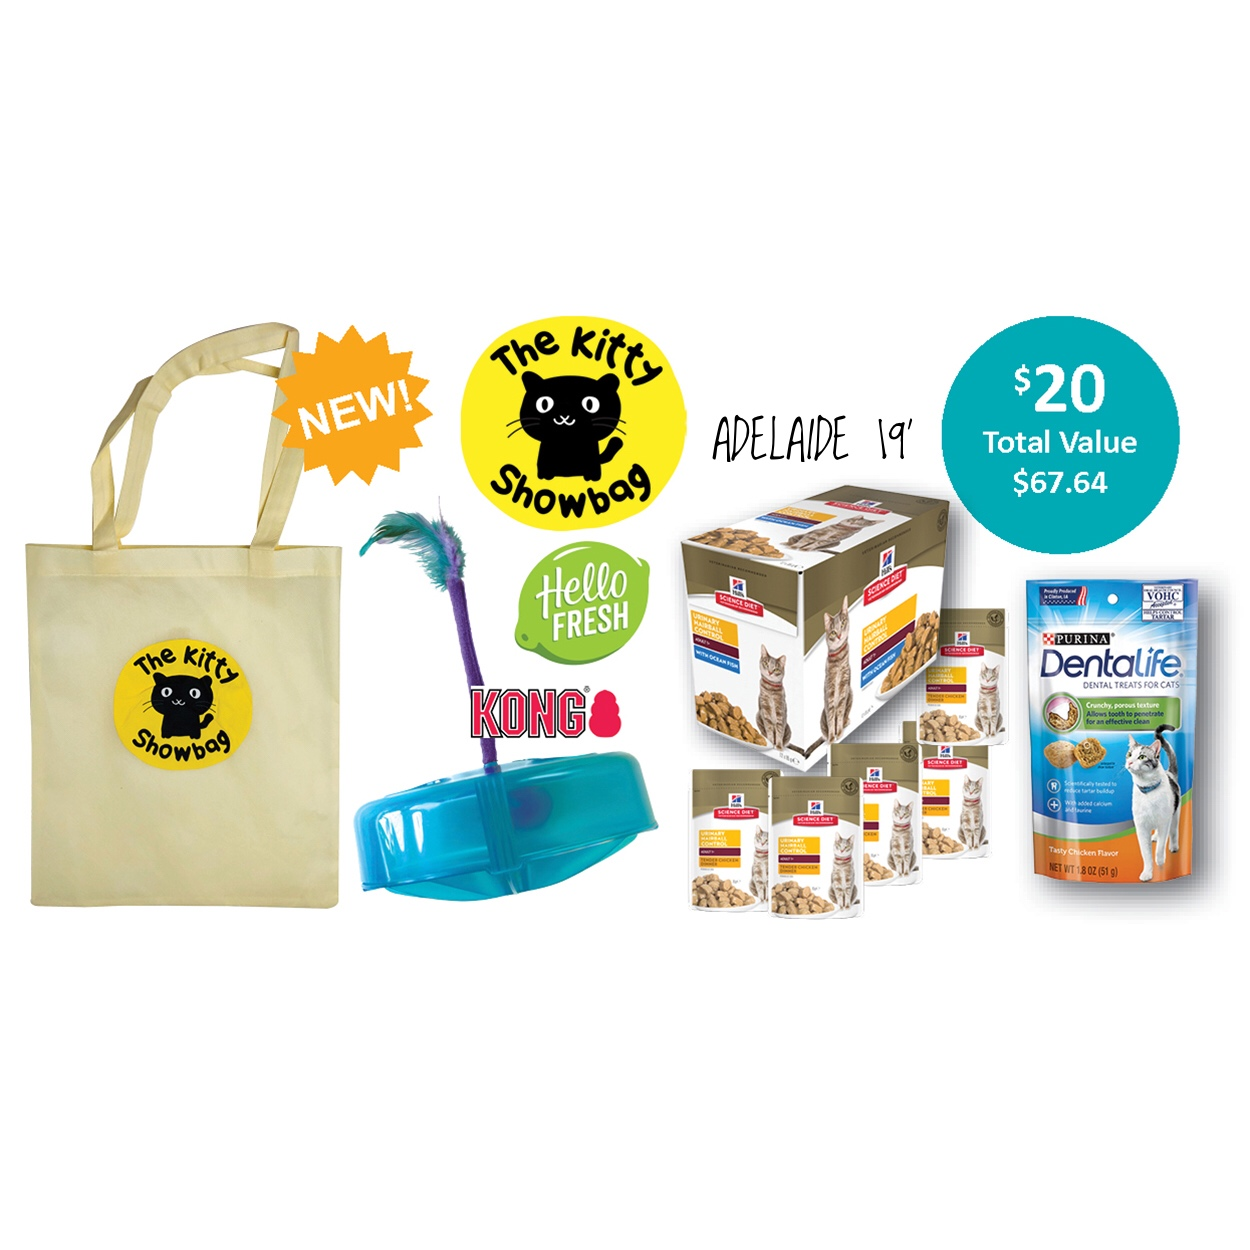 The Kitty Showbag - Adelaide 19'